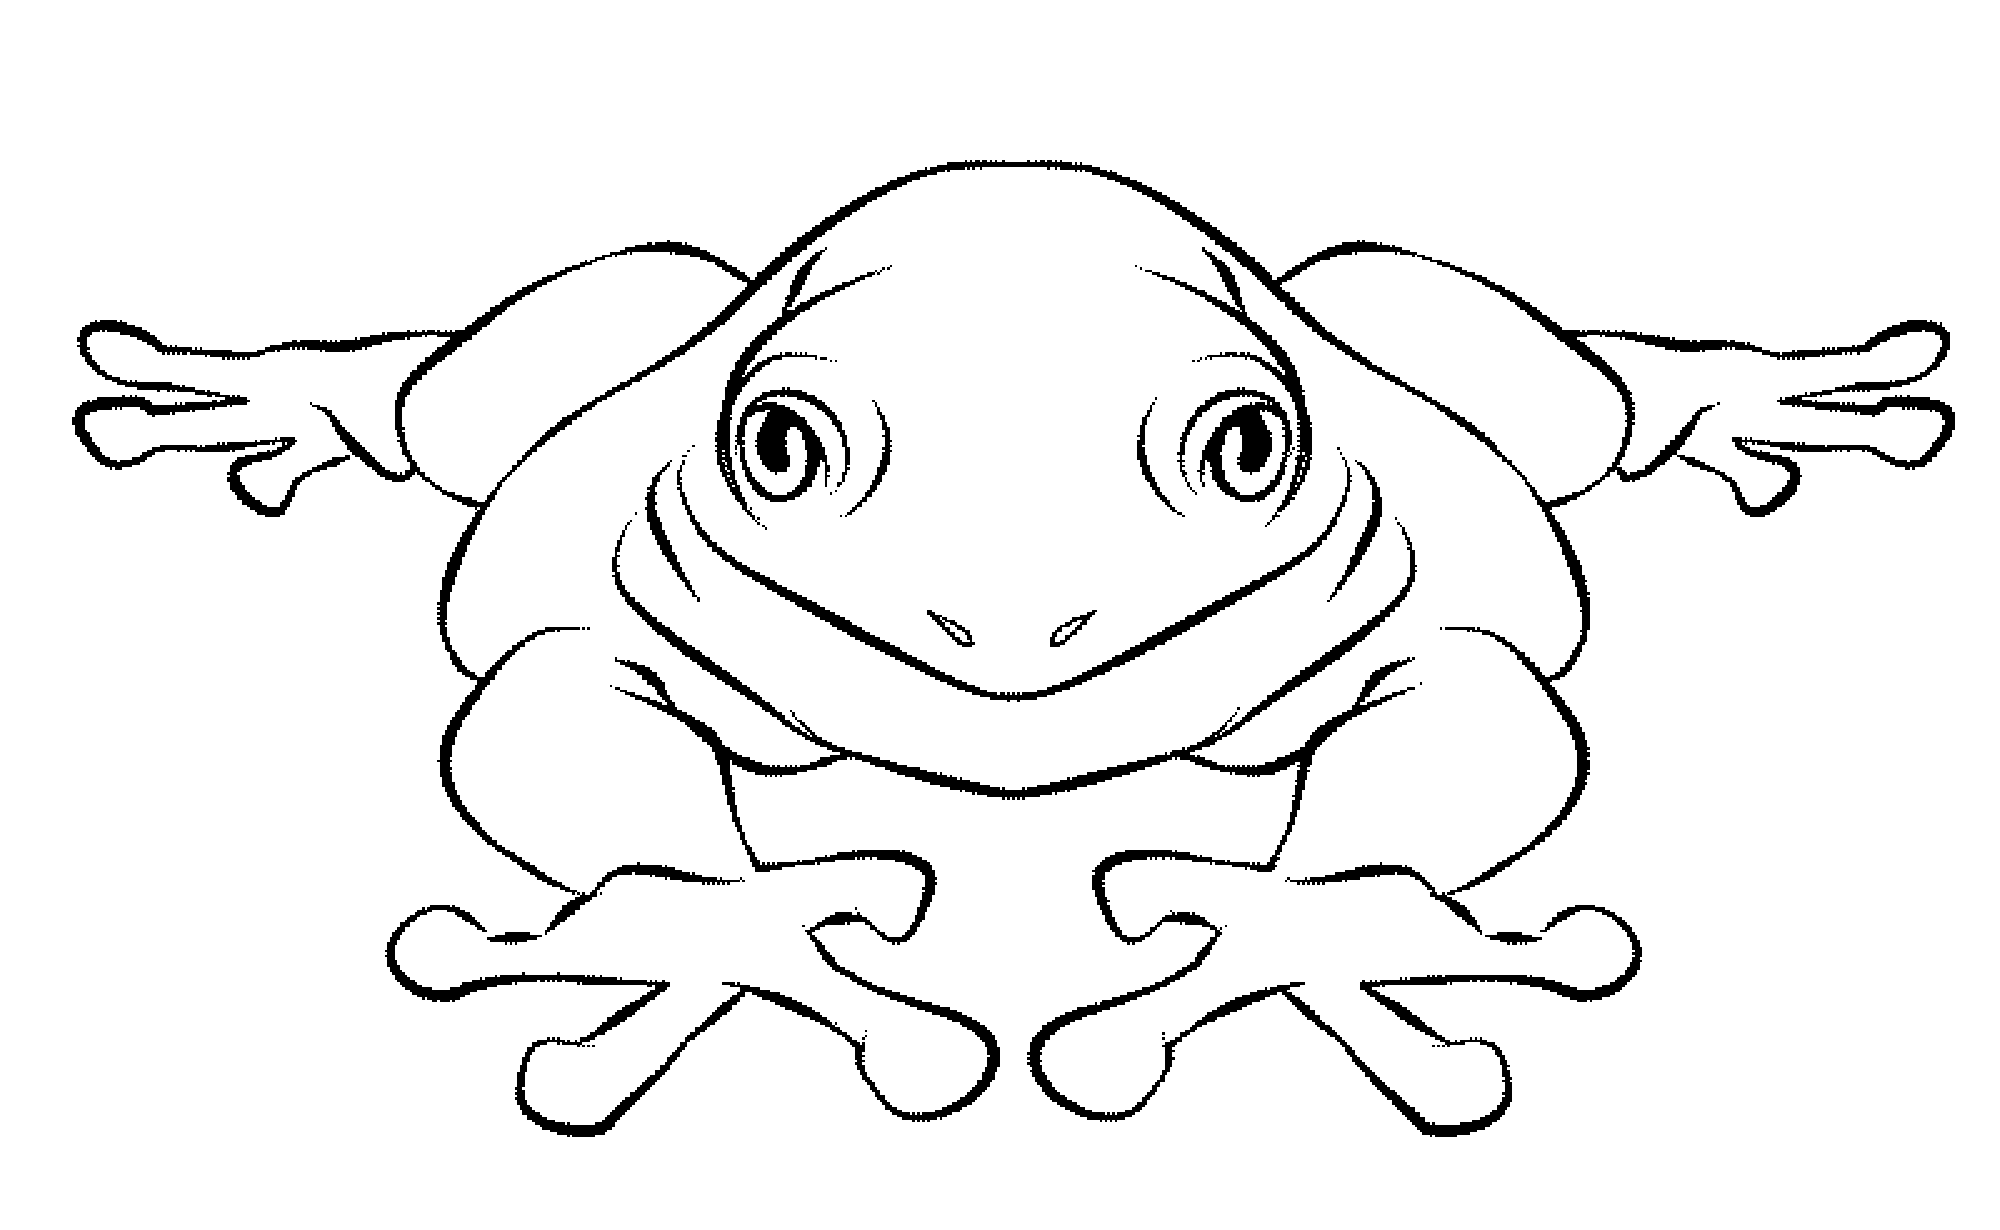 frog coloring sheets frog coloring pages 3 coloring pages to print sheets frog coloring